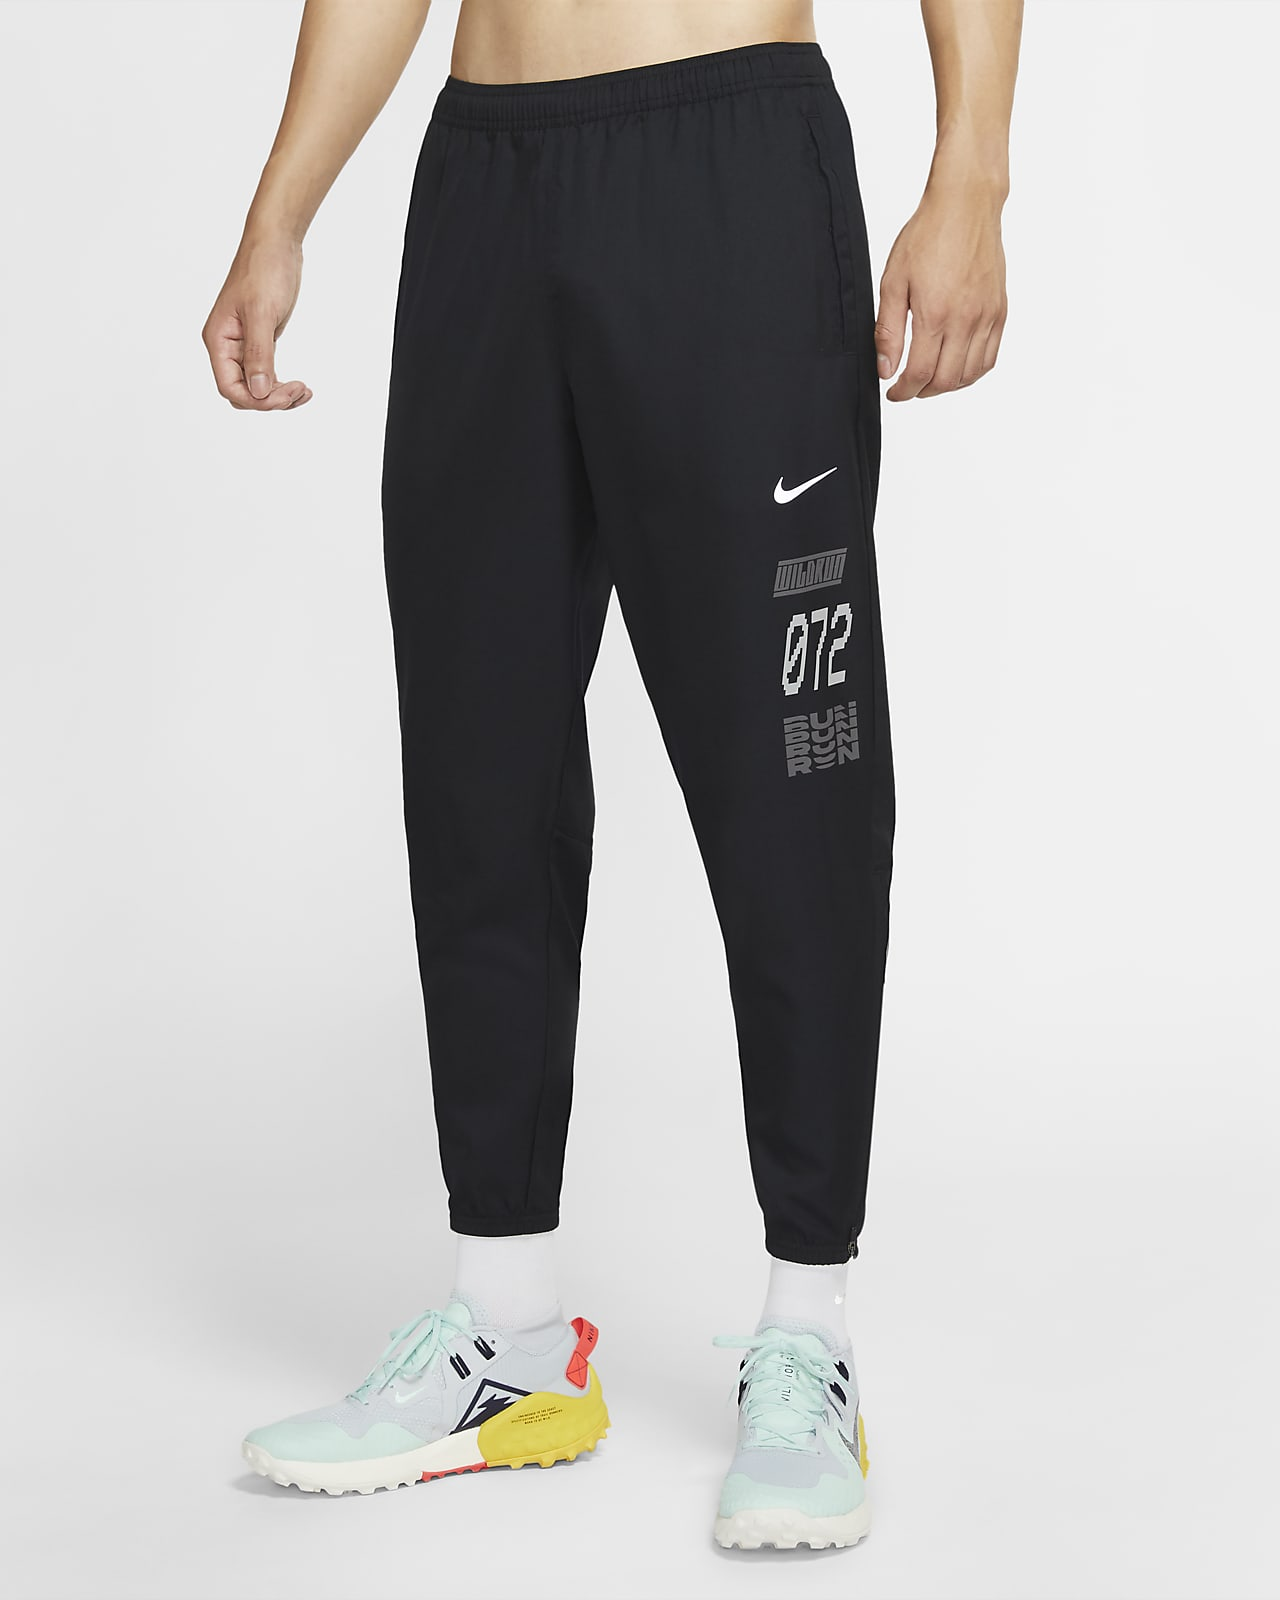 Nike Essential Wild Run Men's Woven Running Trousers